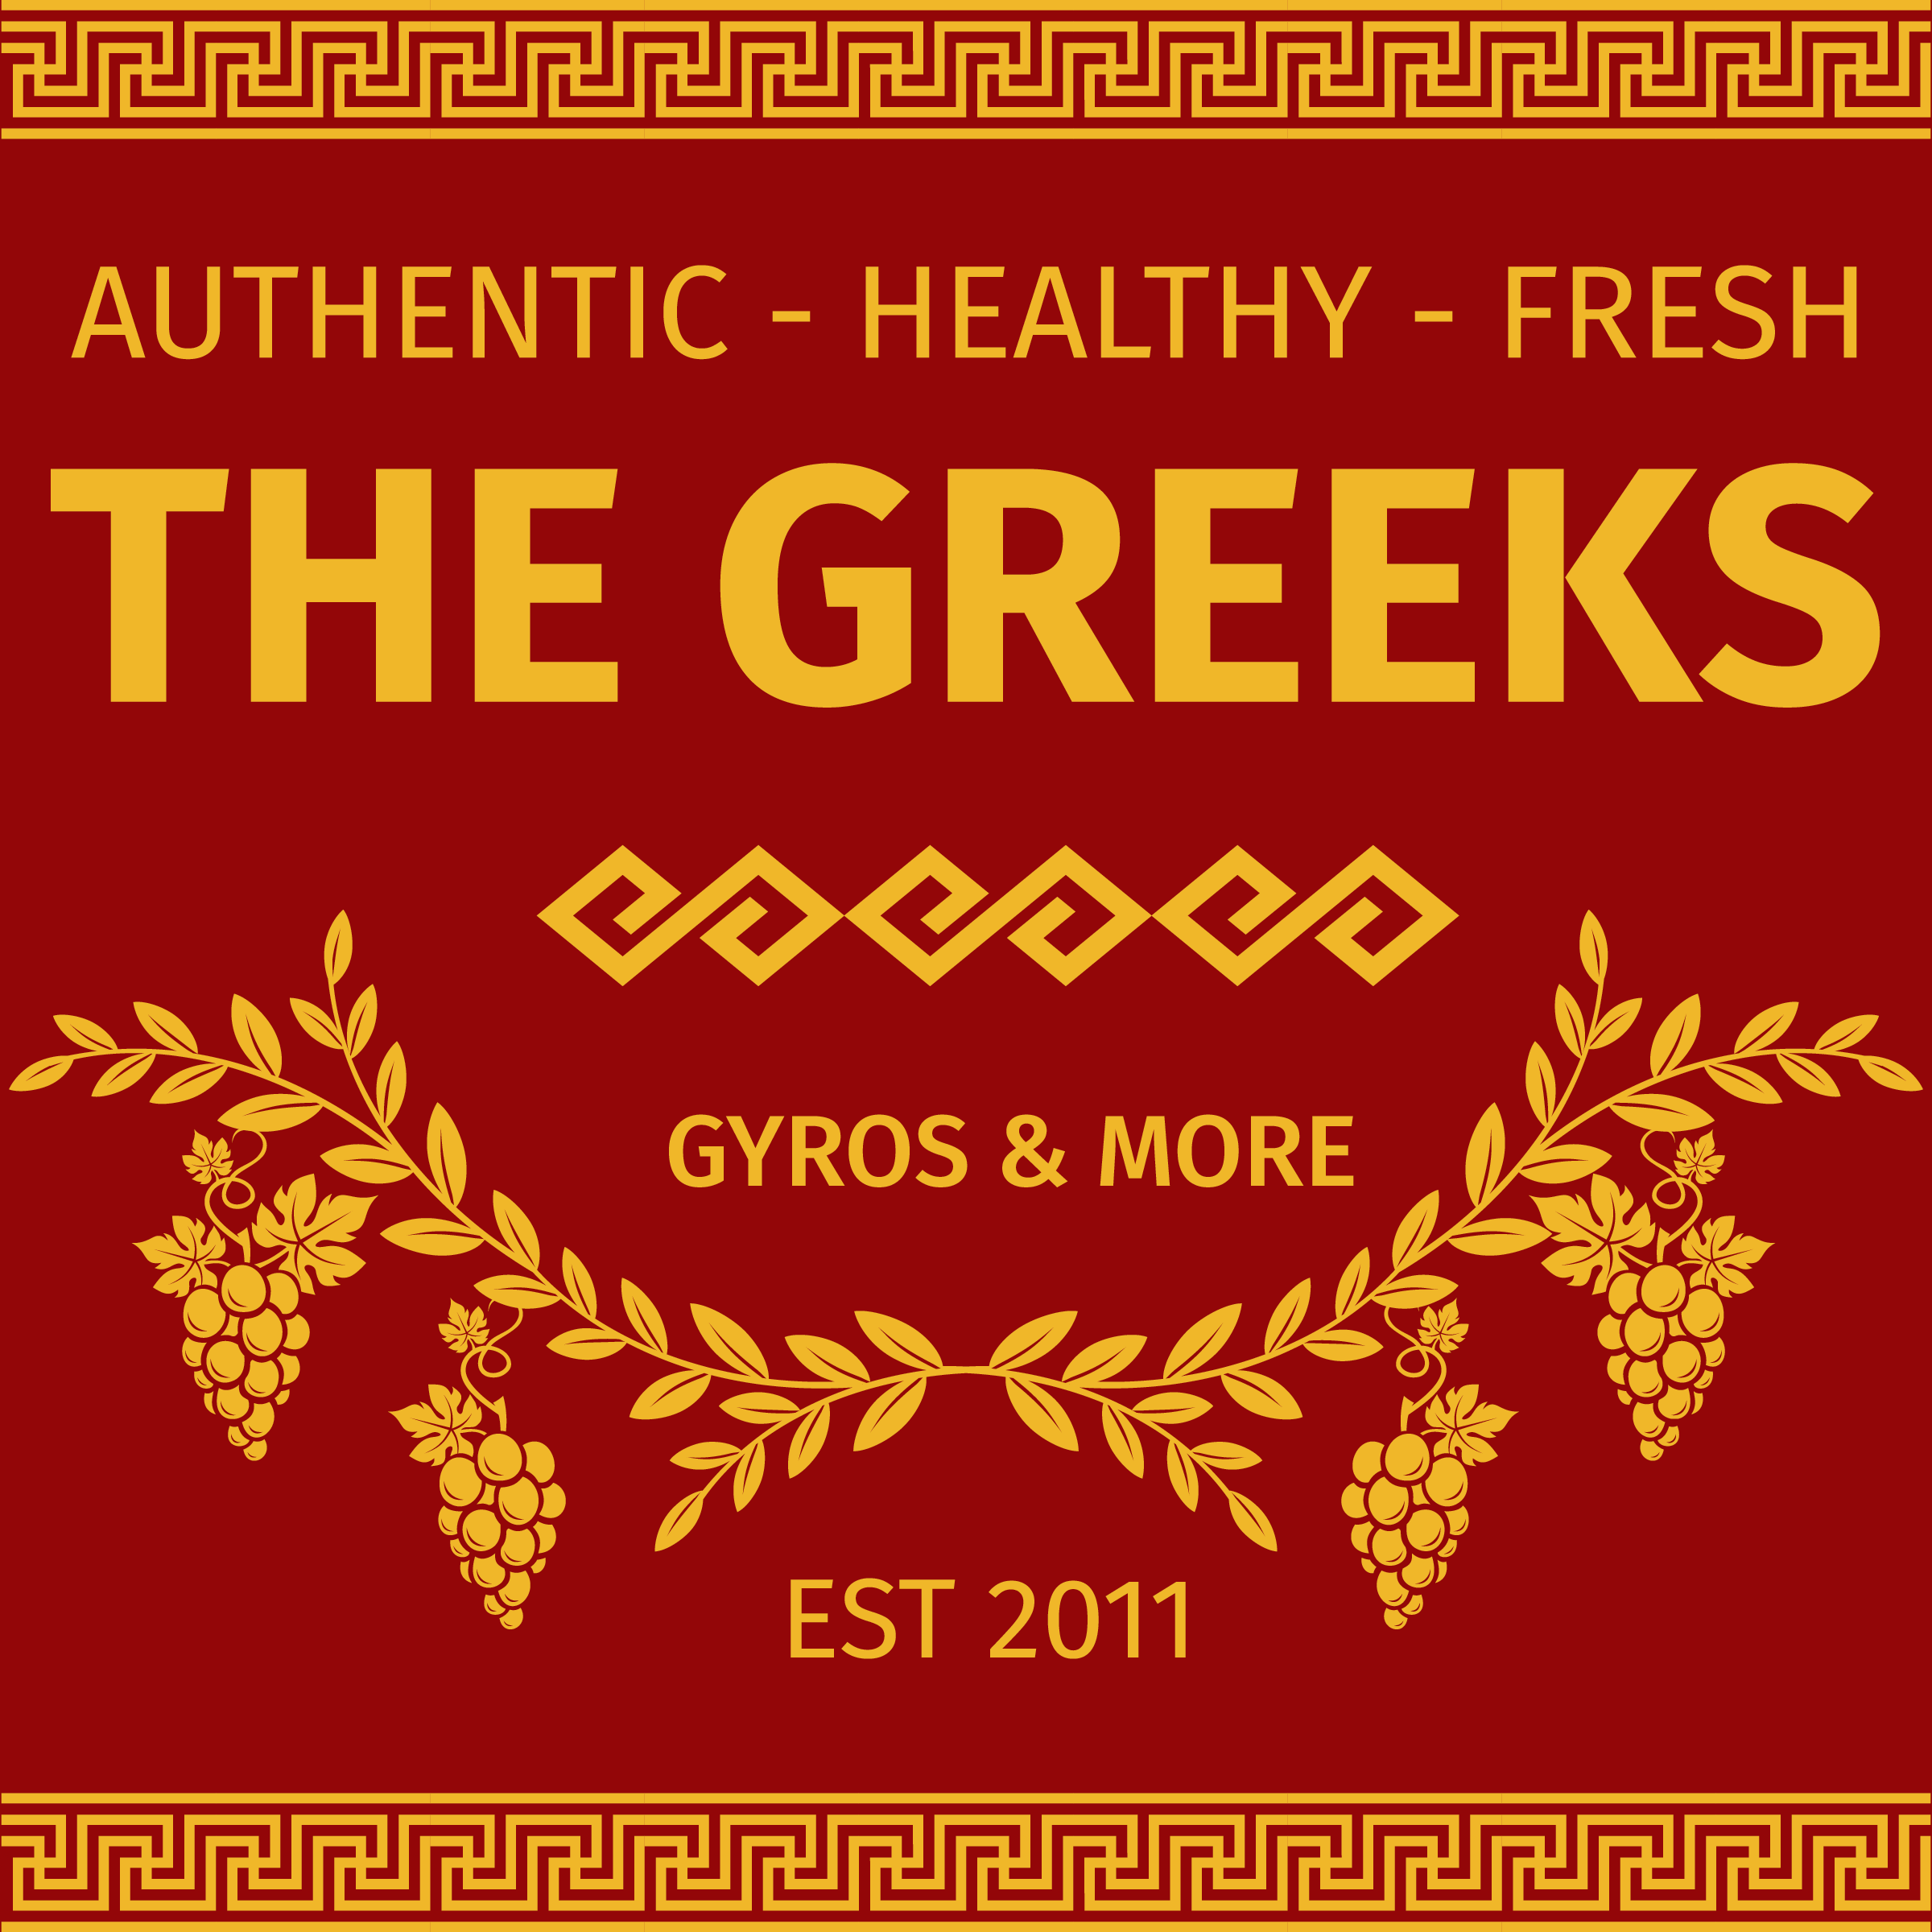 The Greeks Franchise